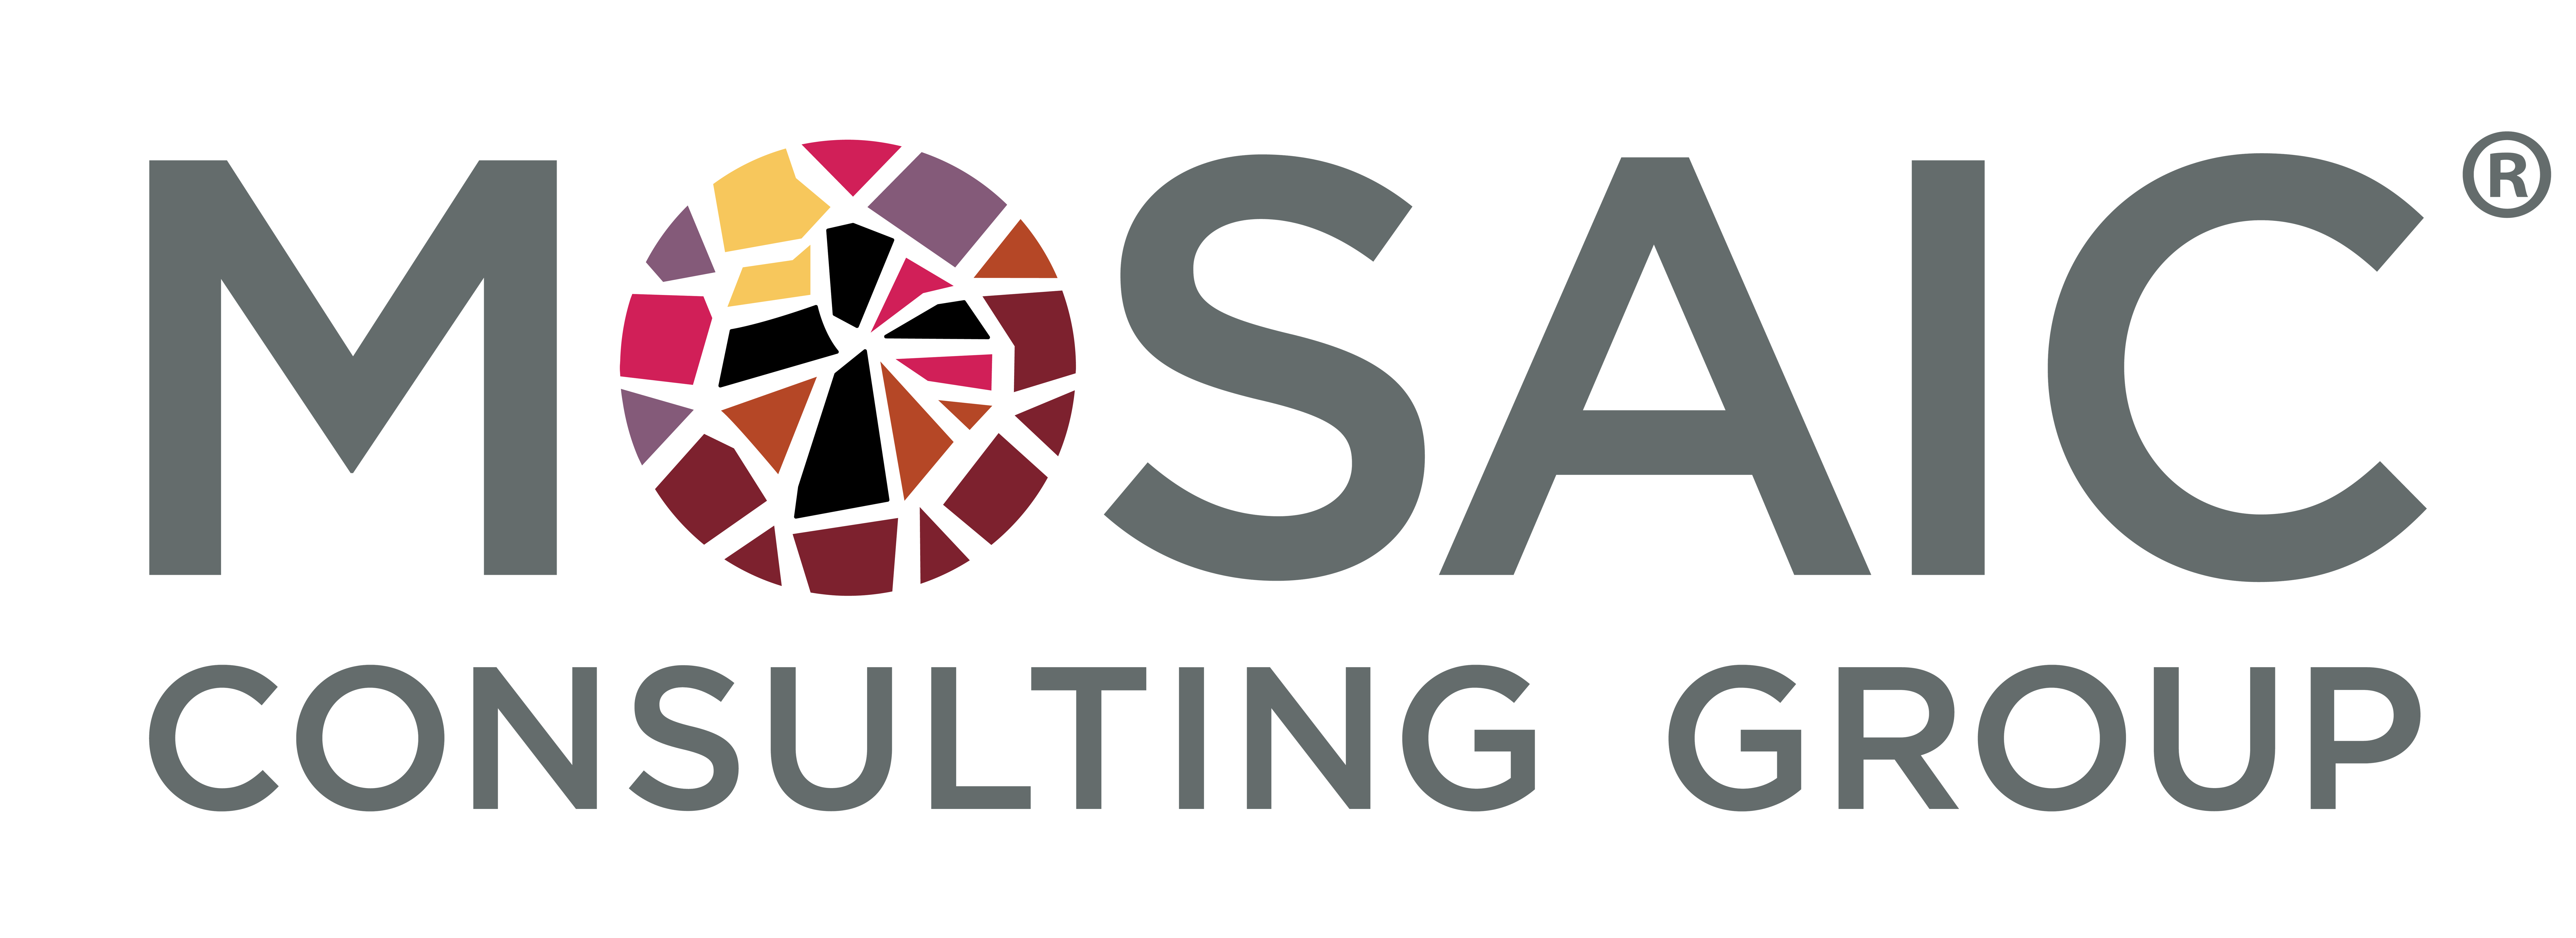 Mosaic Consulting Group